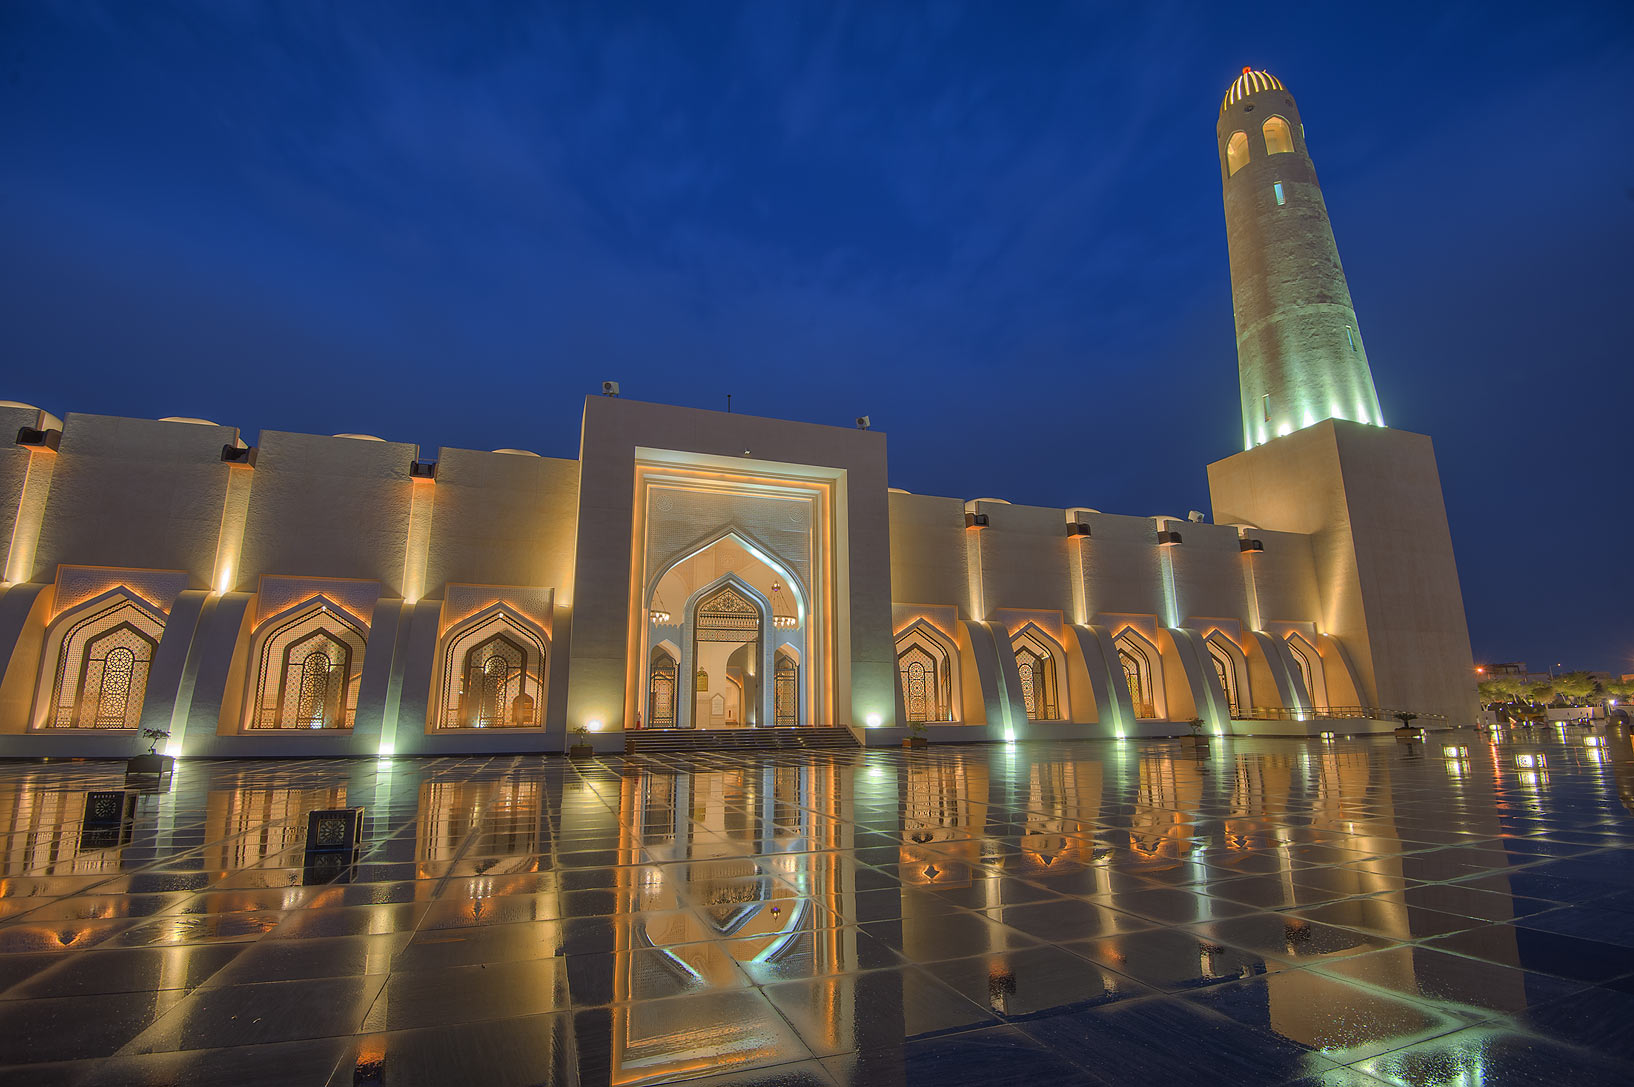 Lights of State Mosque (Sheikh Muhammad Ibn Abdul Wahhab Mosque). Doha, Qatar